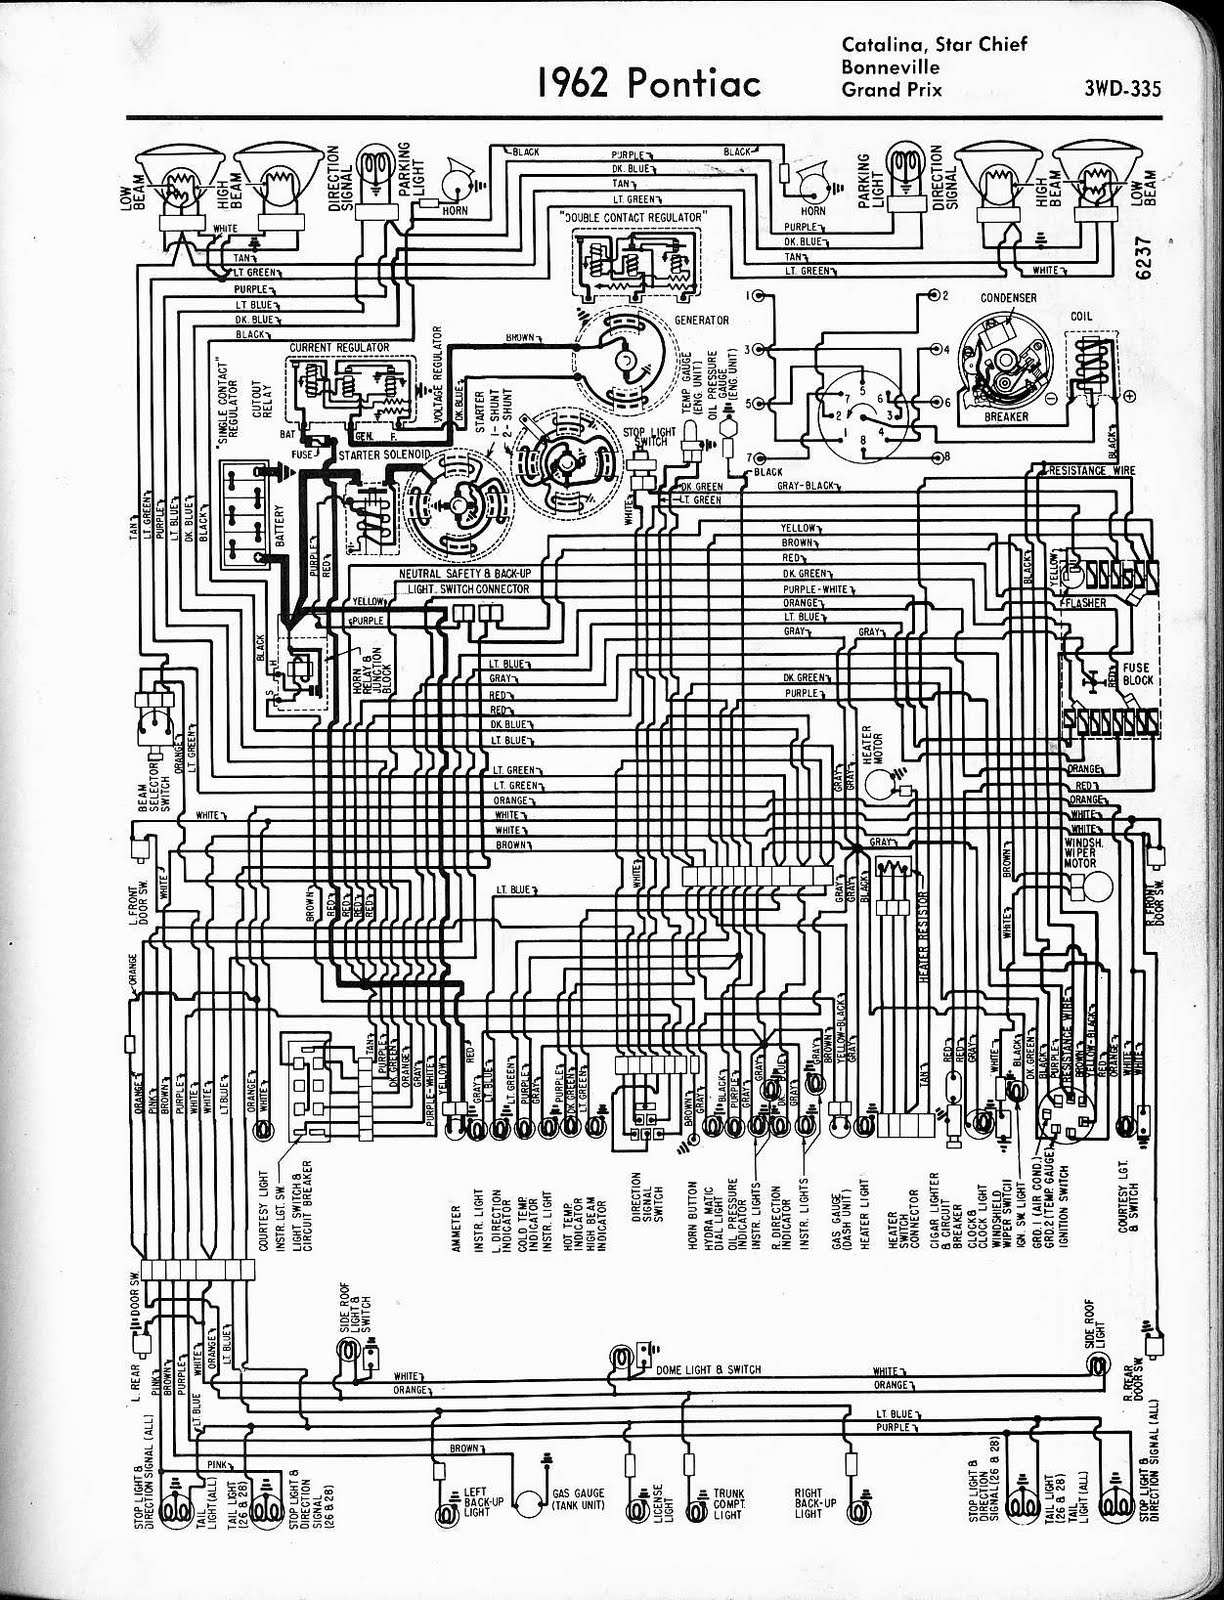 04 honda civic ac wiring diagram html with 1962 Pontiac Catalina Star Chief on 1983 1989 Ford Ranger Headlight Wiring further 01 Toyota Sienna Parts Diagram further 1985 Gmc Truck Front Side Wiring additionally 1960 Plymouth Valiant Wiring Diagram besides 2003 Honda Accord A C Relay Location.